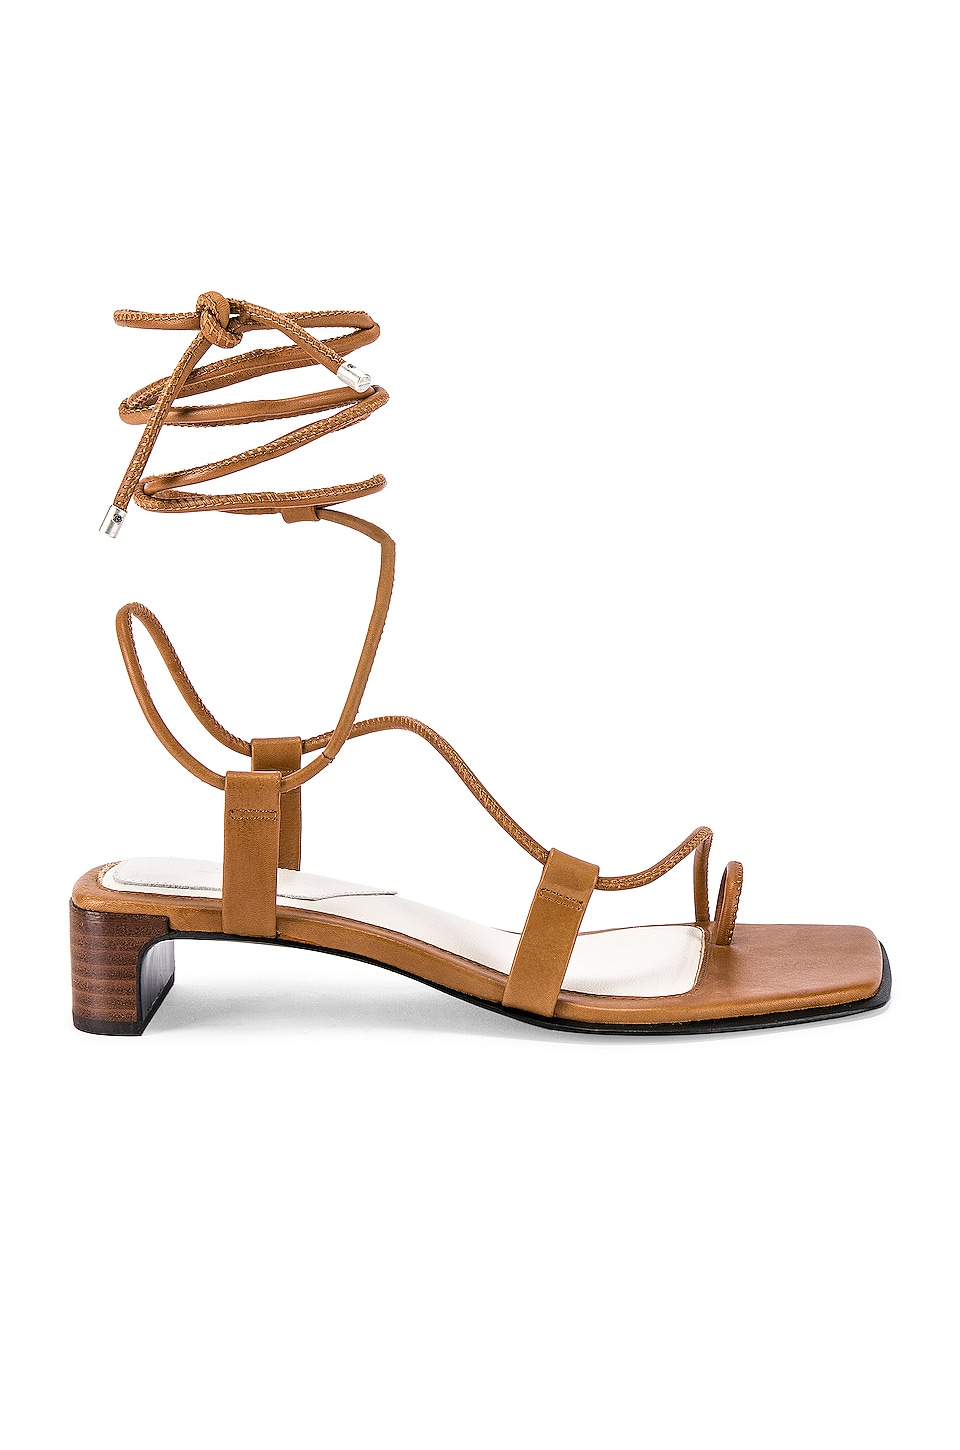 Rag & Bone Cindy Tie Sandal in Tan